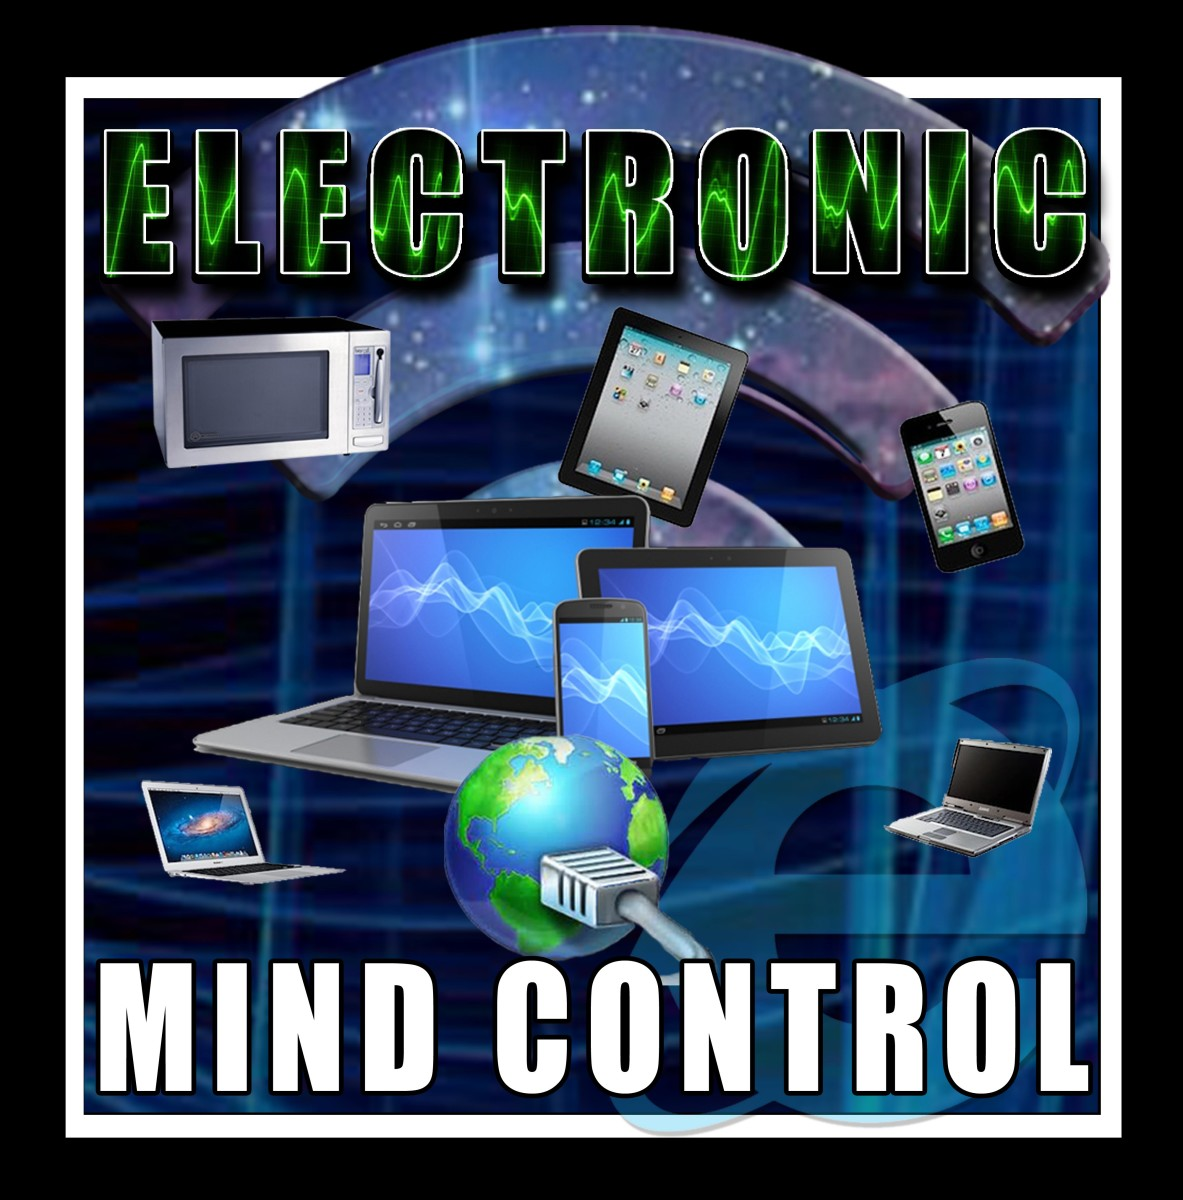 Hypnotizing The Masses Through Electronic Mind Control